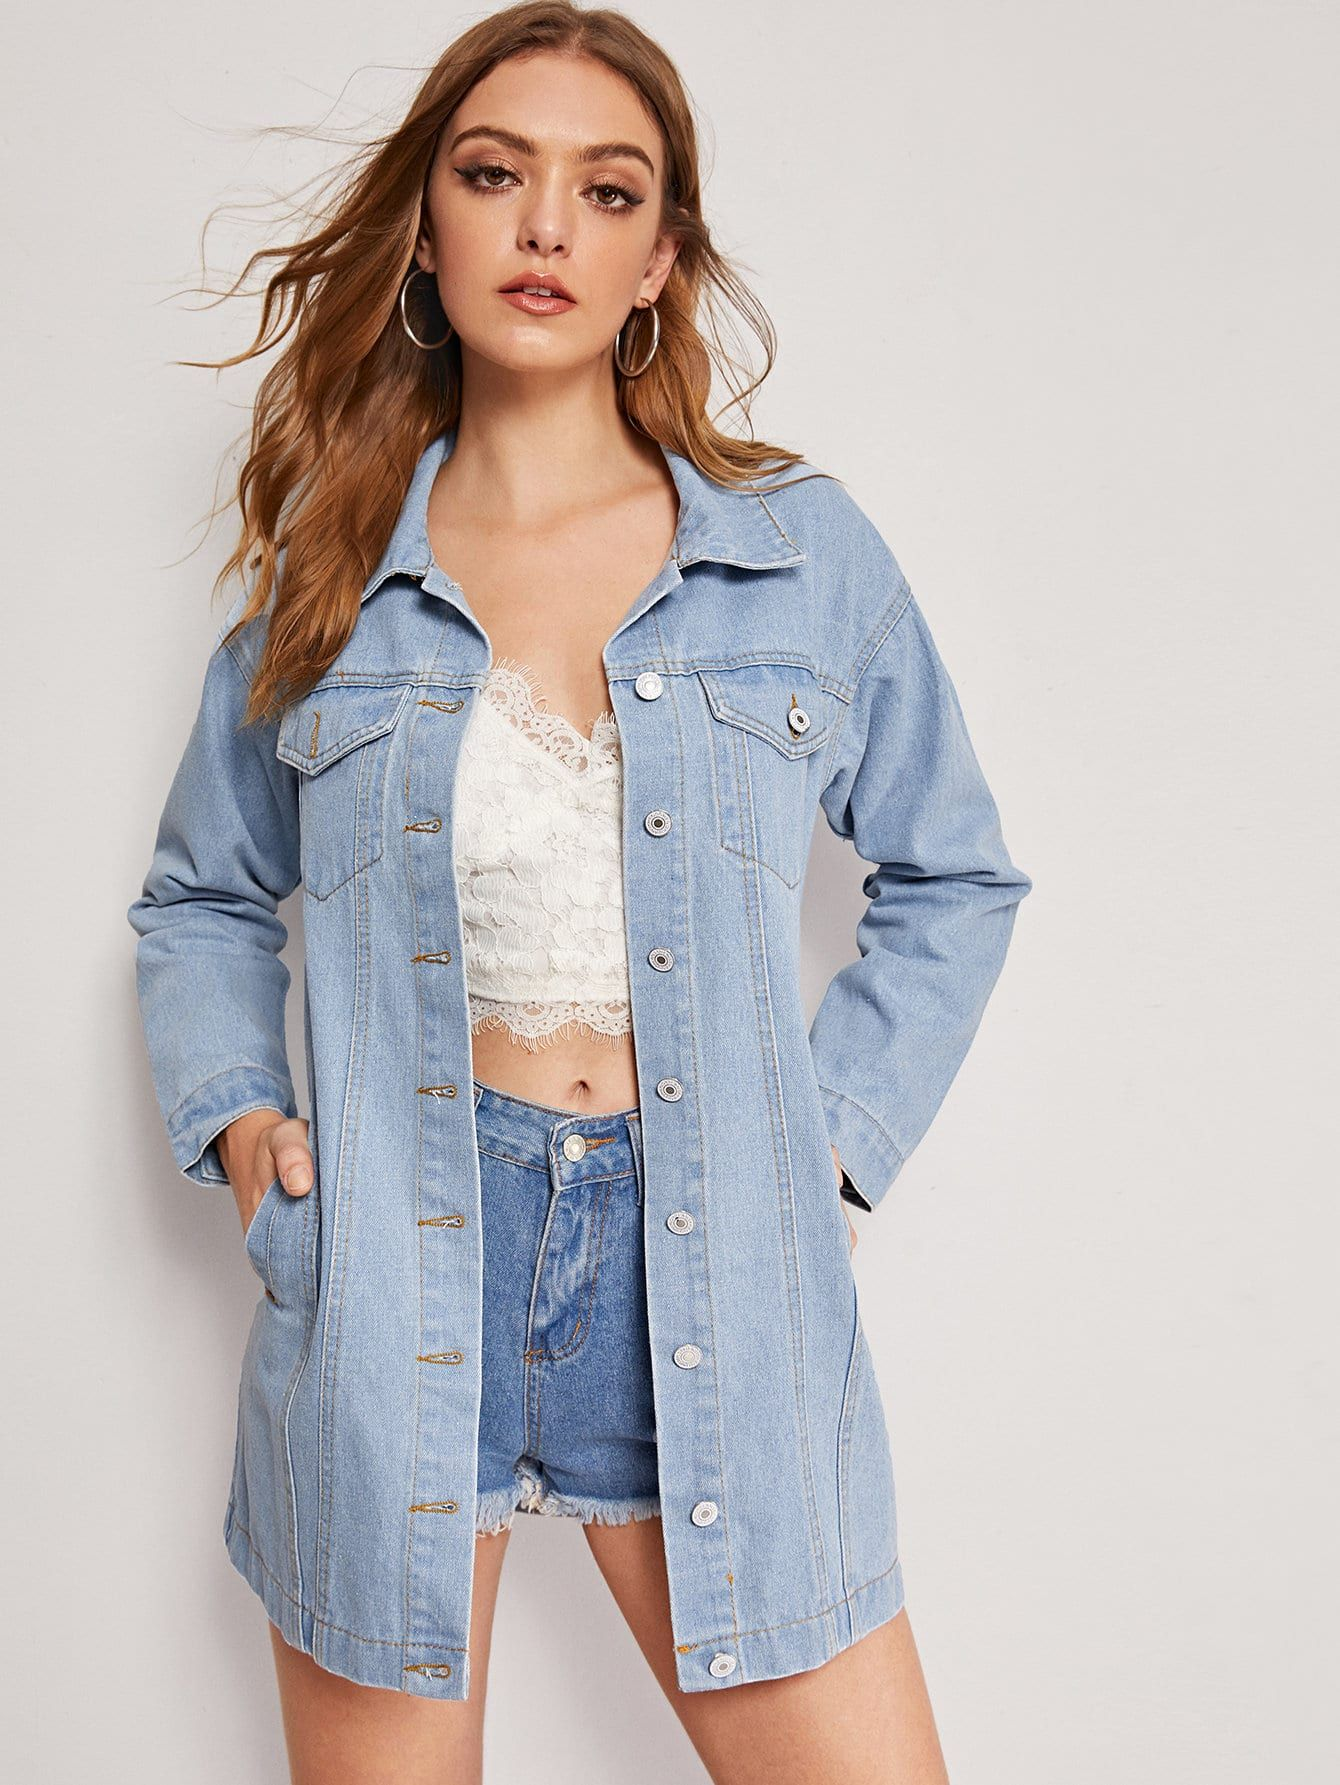 Ad Faded Longline Denim Jacket Tags Casual Blue Plain Long Other Button Pocket Long Sleeve Spr Longline Denim Jacket Denim Jacket Denim Jacket Women [ 1785 x 1340 Pixel ]